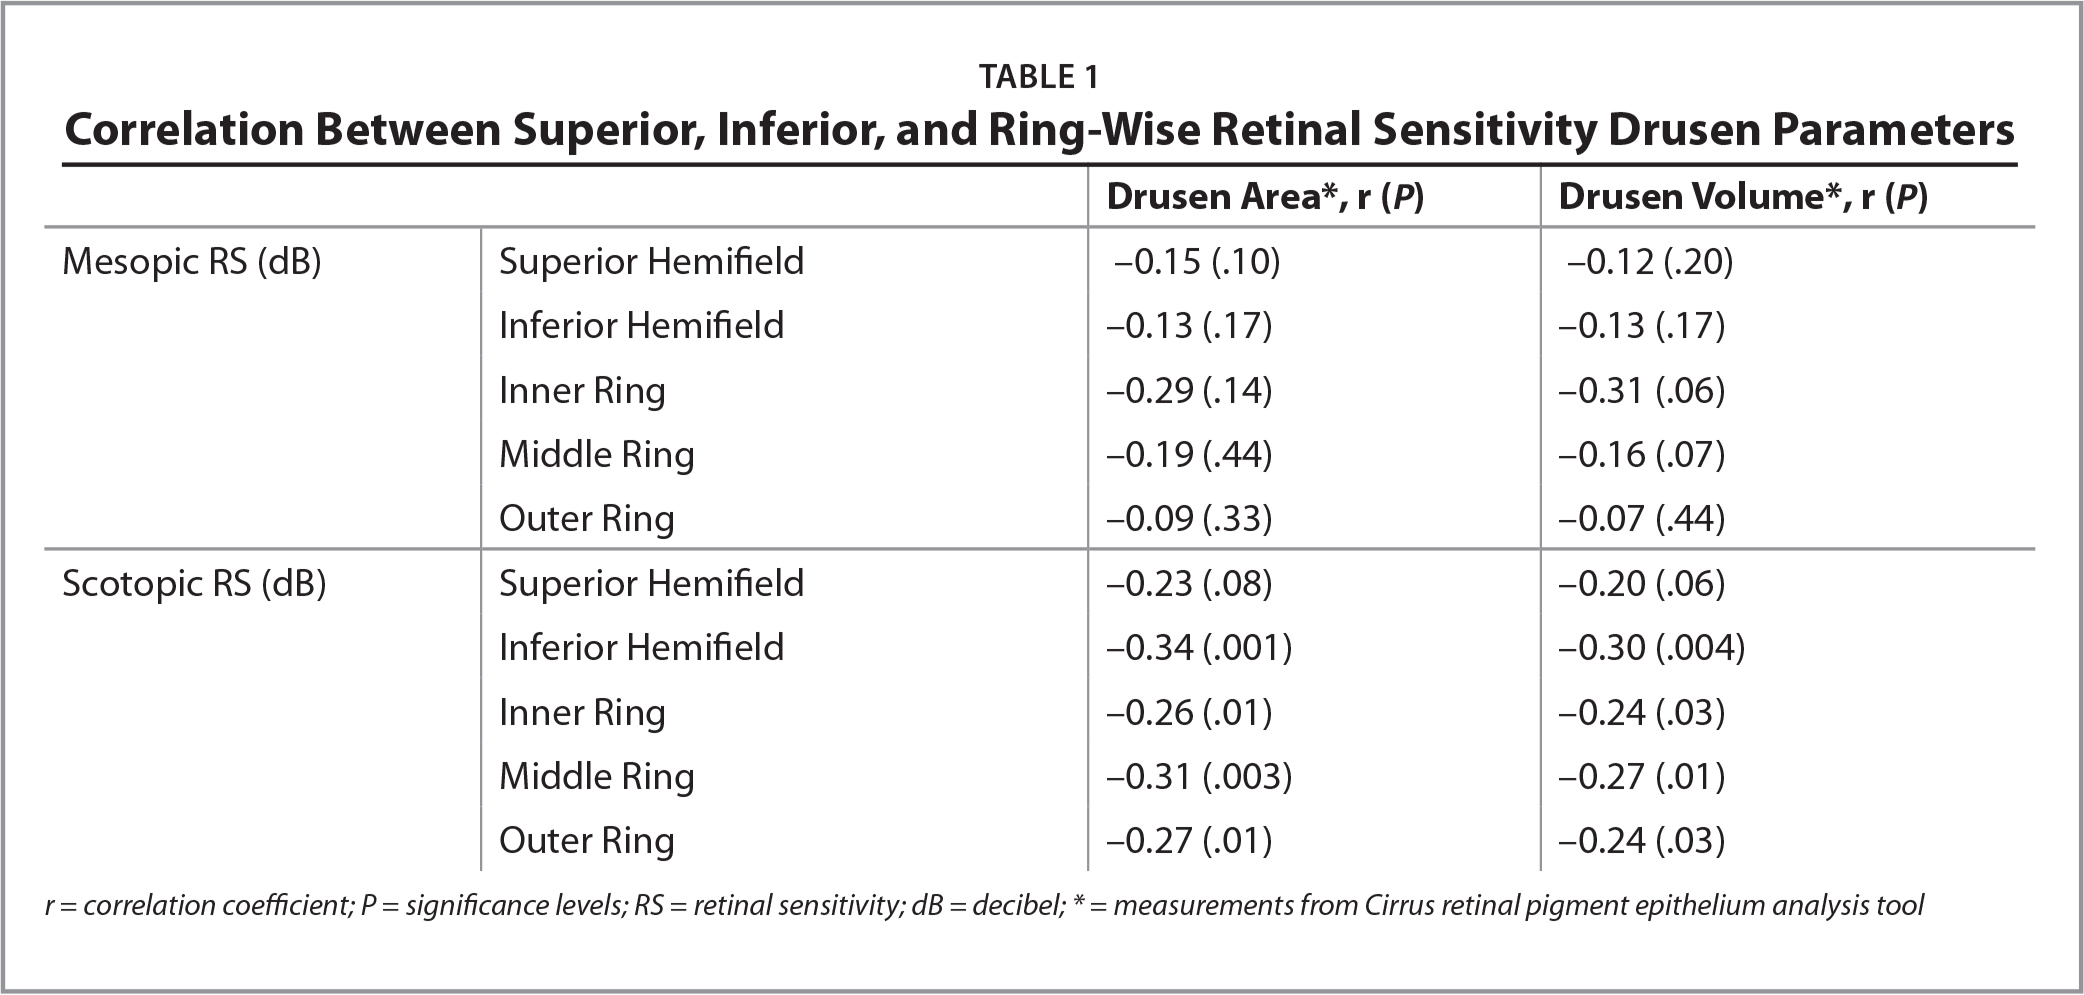 Correlation Between Superior, Inferior, and Ring-Wise Retinal Sensitivity Drusen Parameters